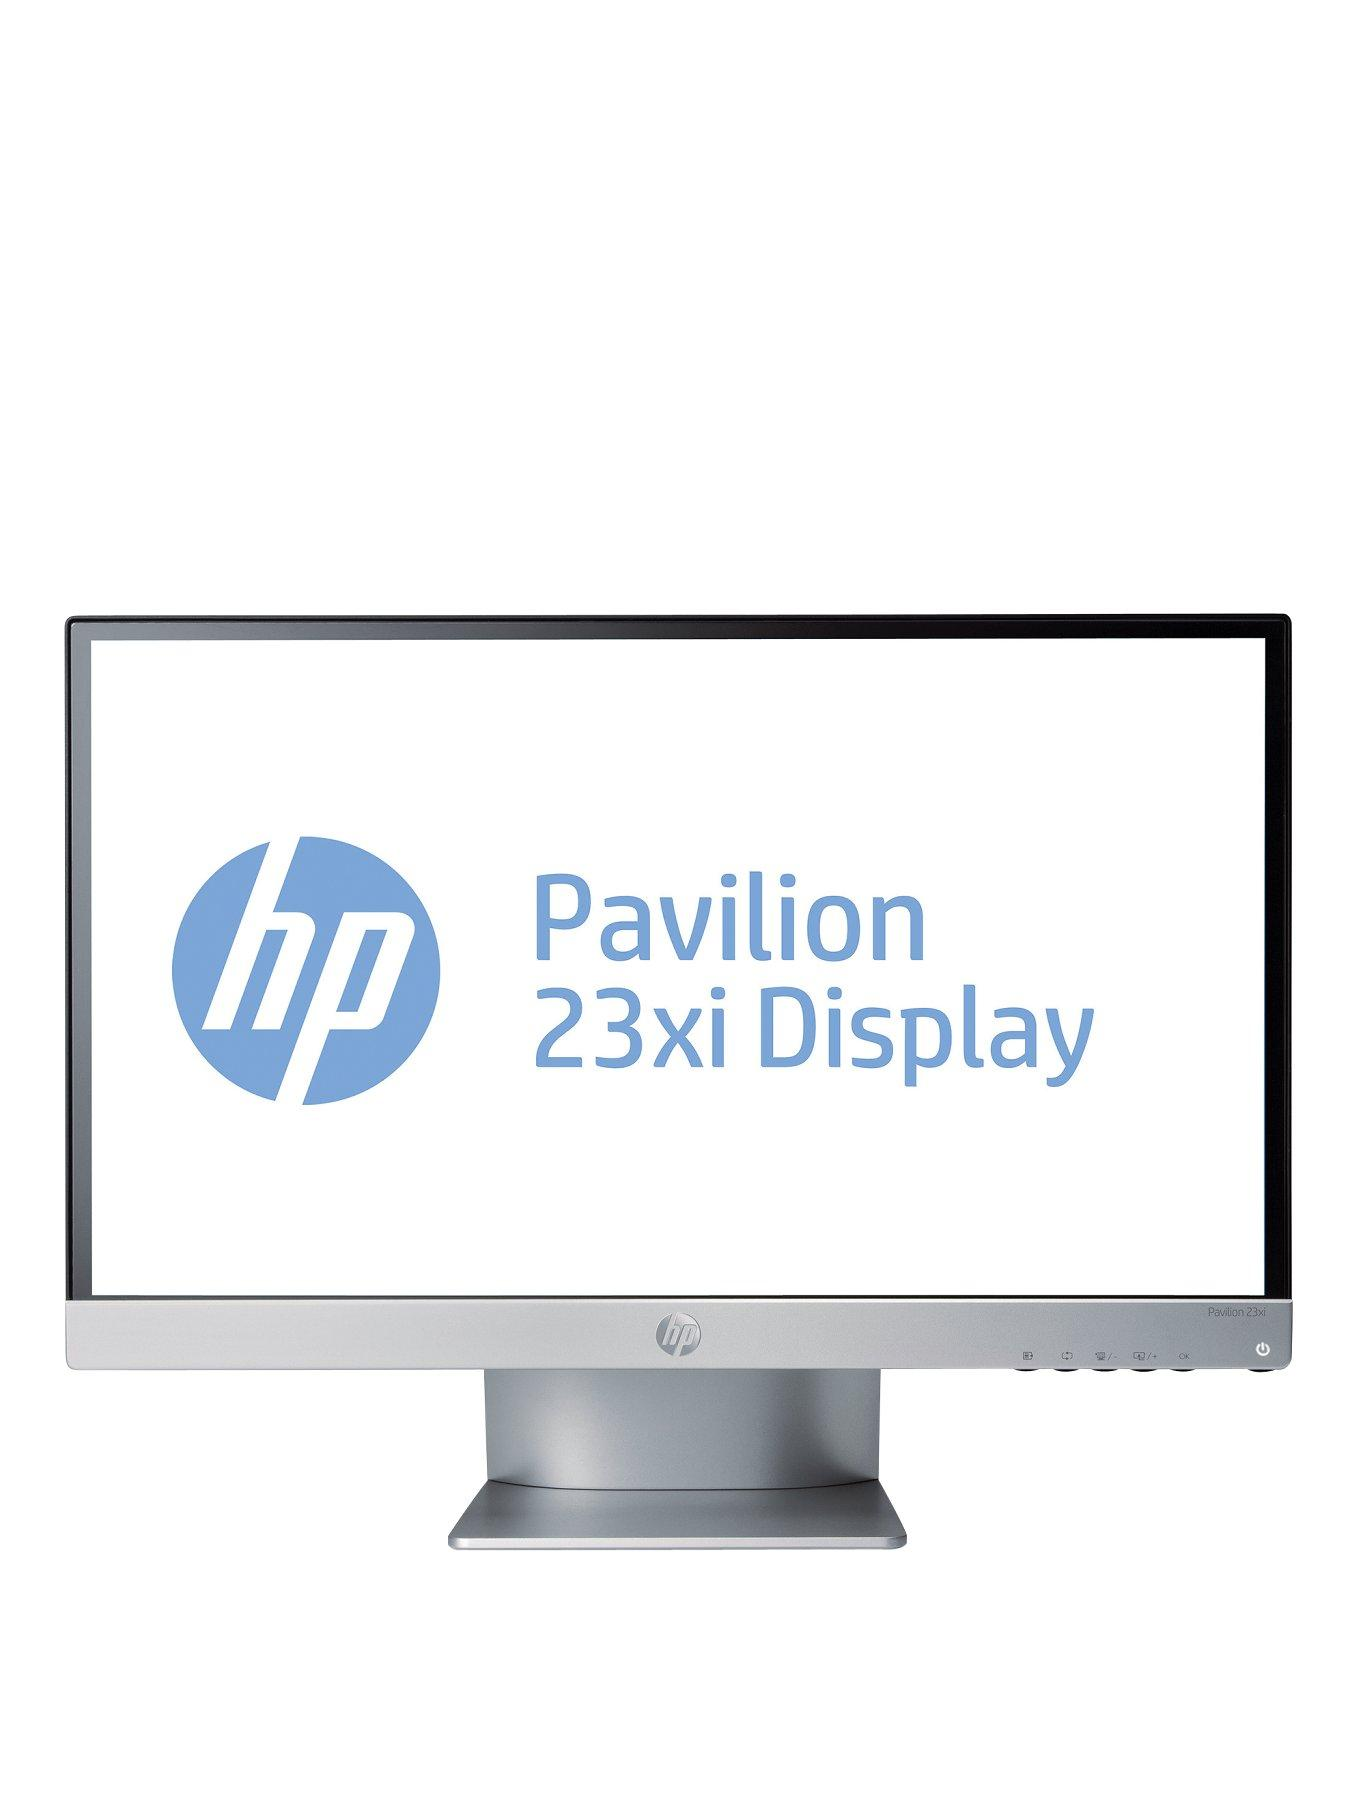 Pavilion 23xi 23 inch Diagonal IPS LED Backlit PC Monitor